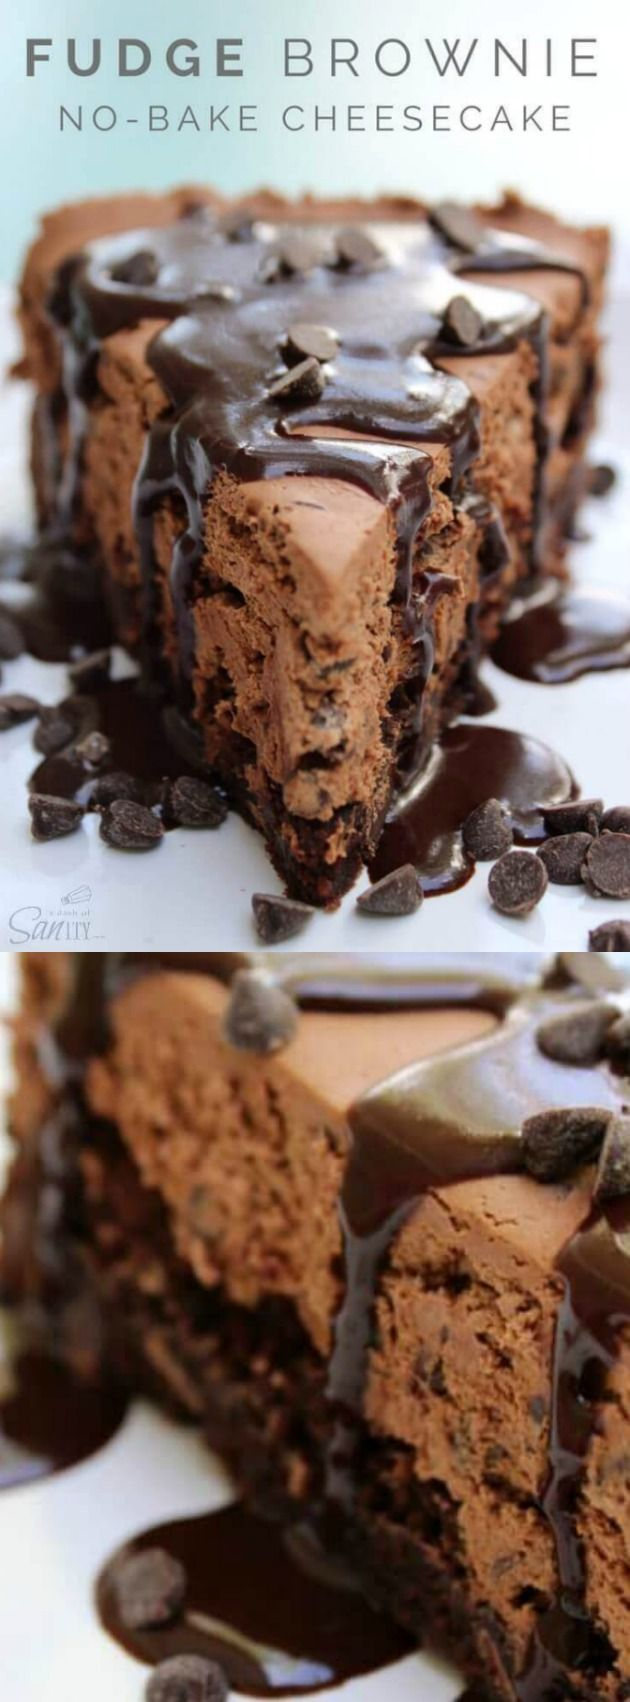 This Fudge Brownie No-Bake Cheesecake recipe from A Dash of Sanity is a chocolate lovers dream come true with it's double chocolate brownie, chocolate-chocolate chip no-bake cheesecake and a homemade fudge sauce!